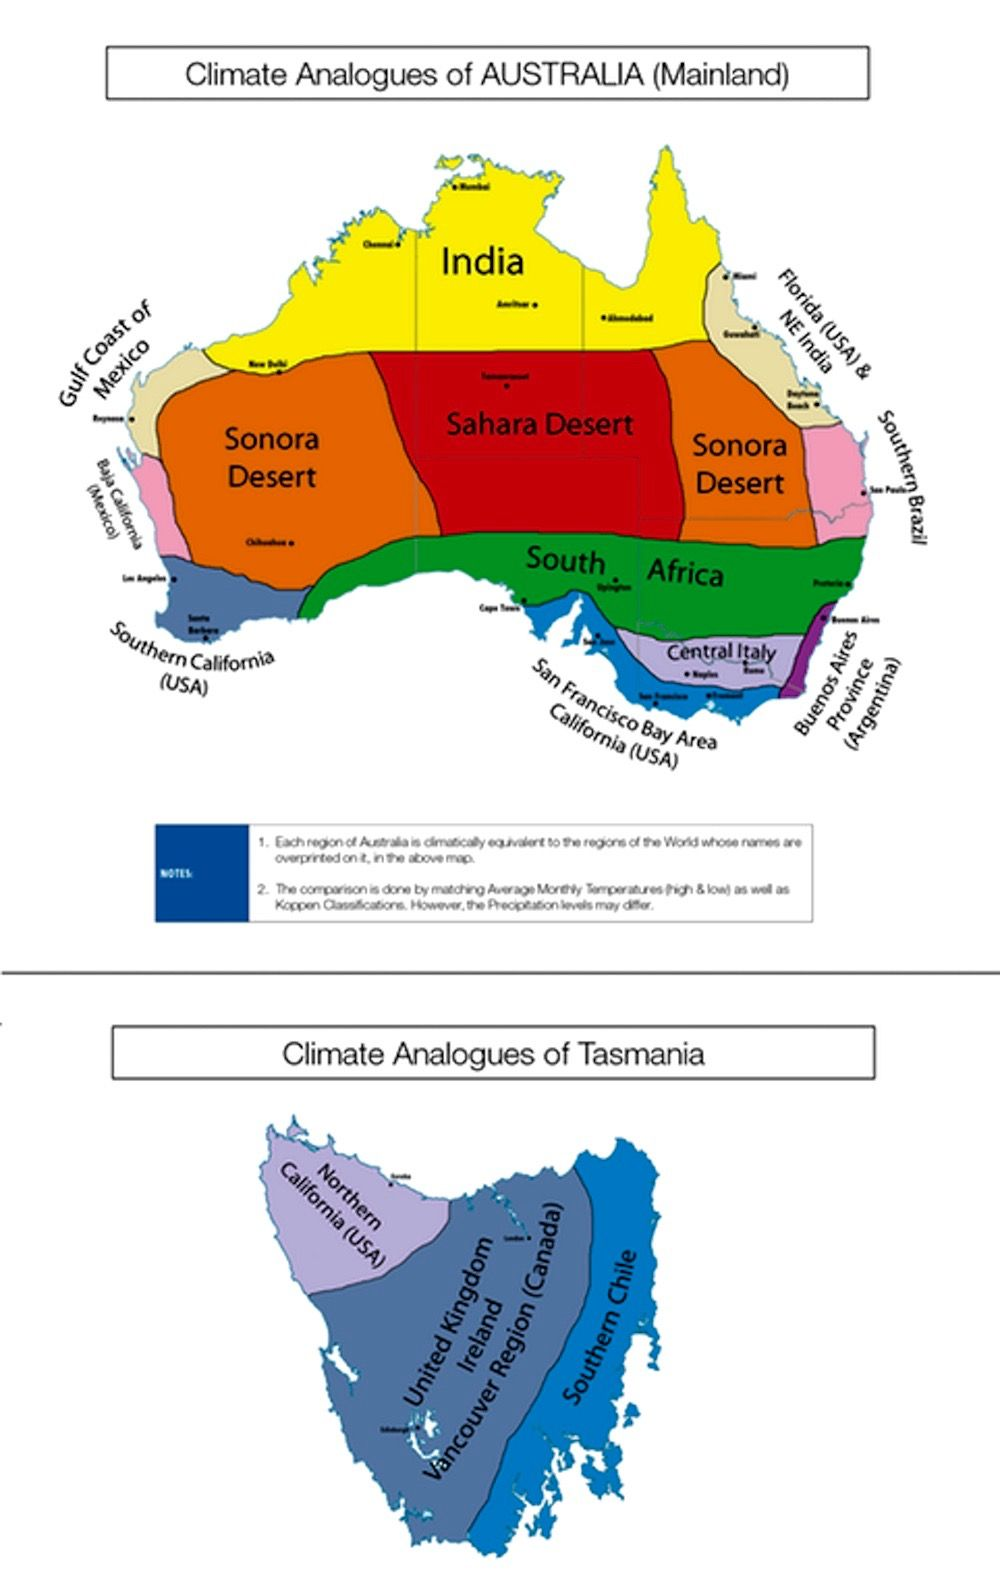 Map of the climate analogues of Australia